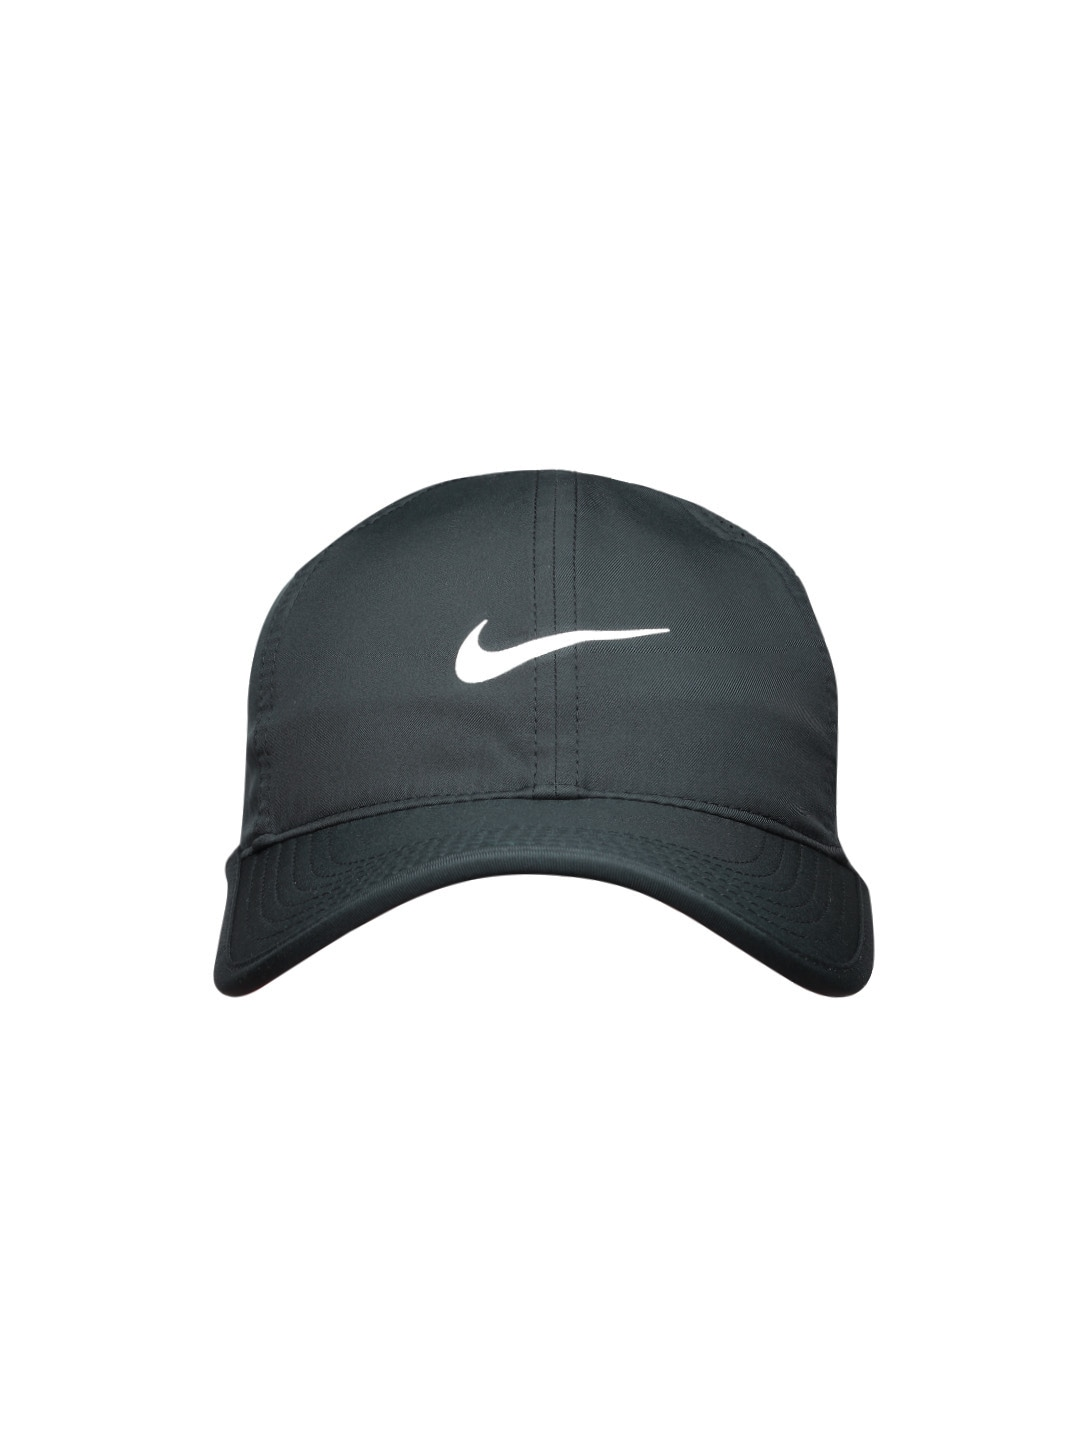 6d2b78cb336 ... usa caps buy caps for men women kids online myntra a430f 3c304